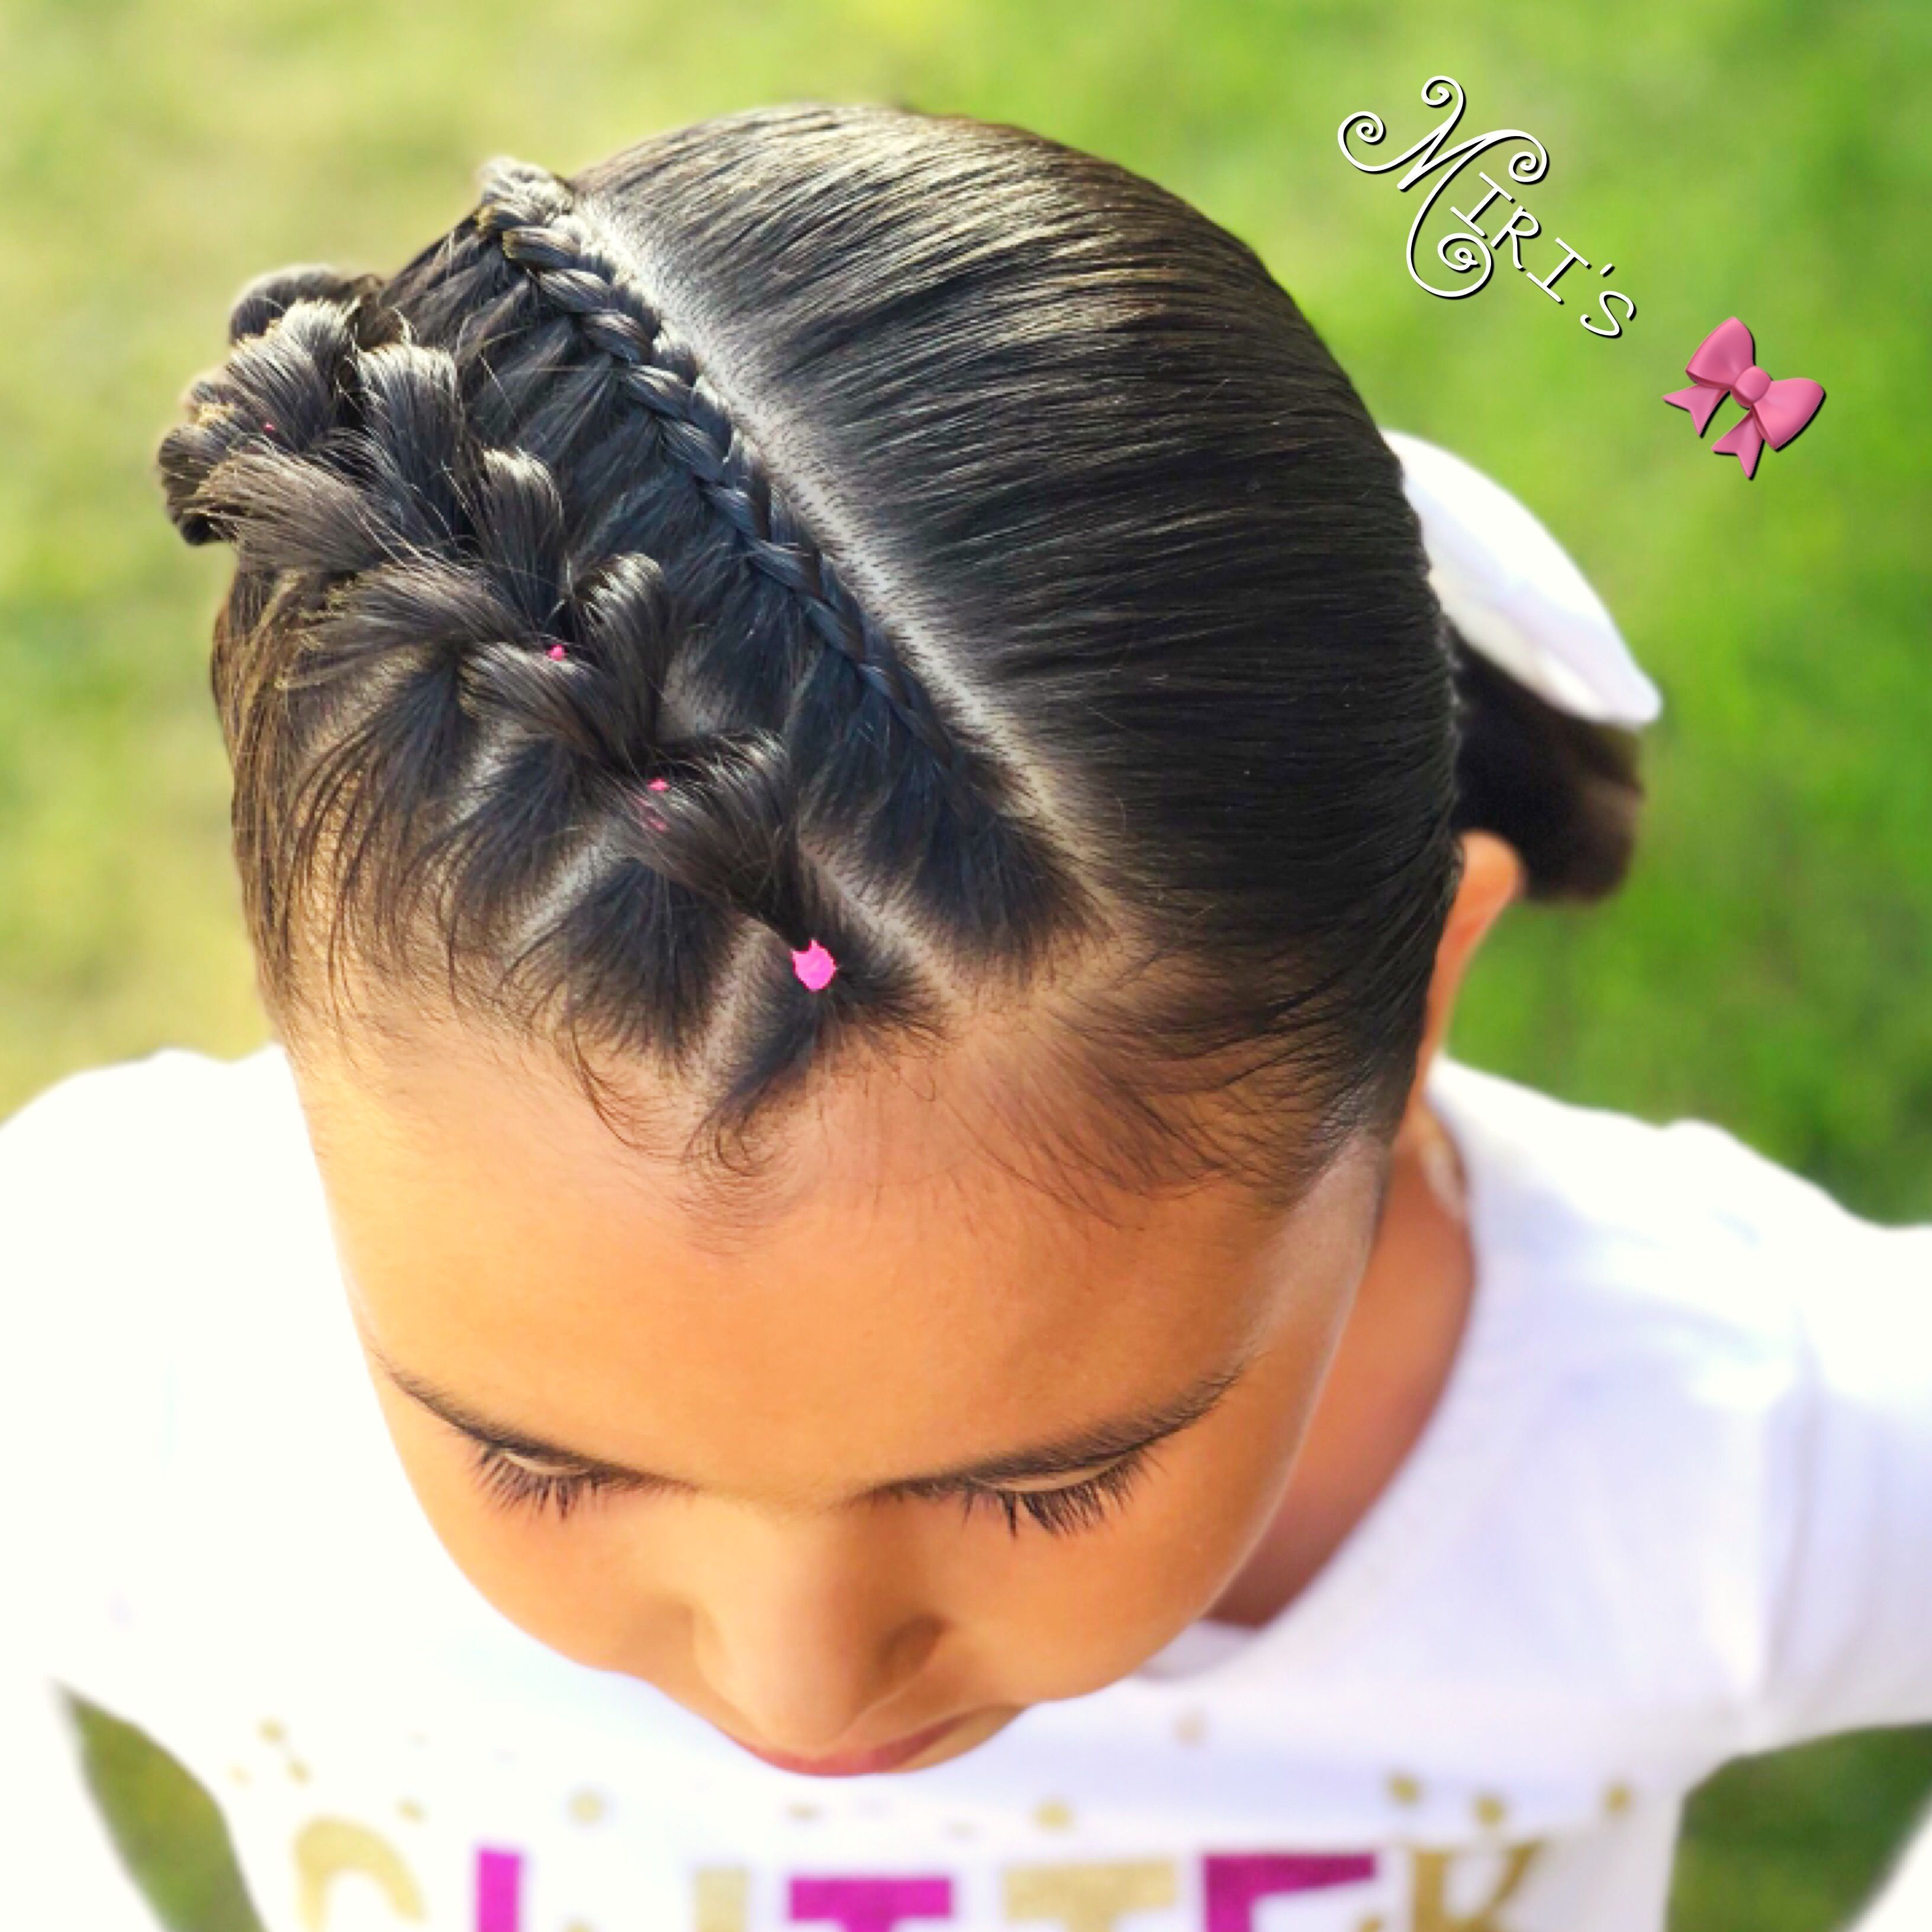 Hair style for little girls with short hair black hairstyles in